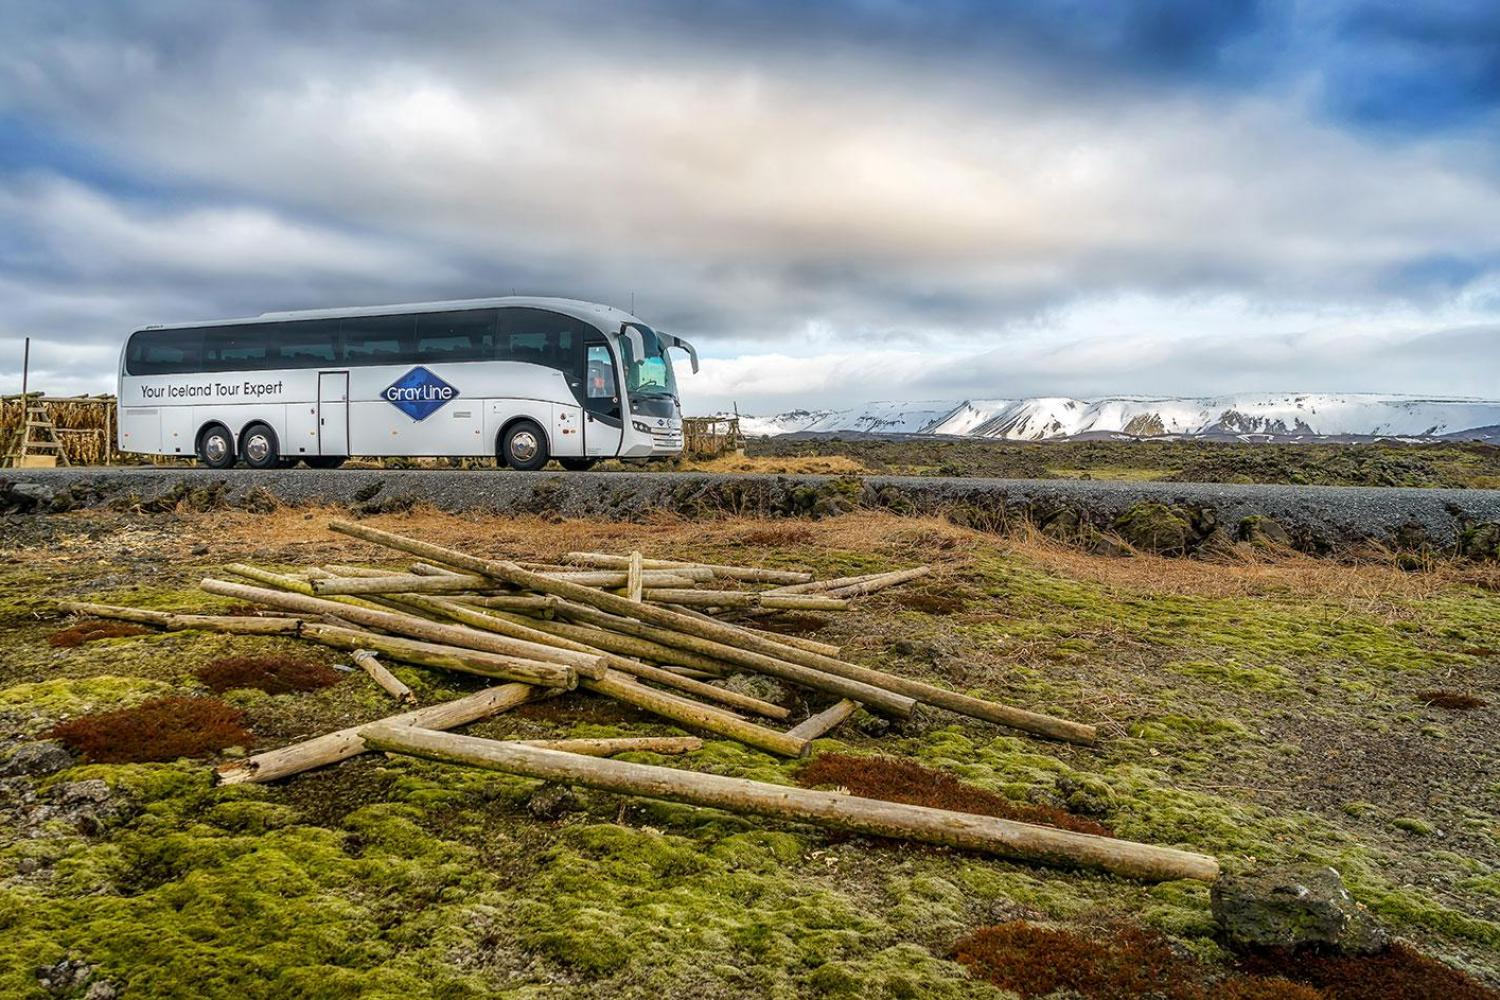 Travel in comfort from your hotel or guest house in Reykjavik to Keflavik airport